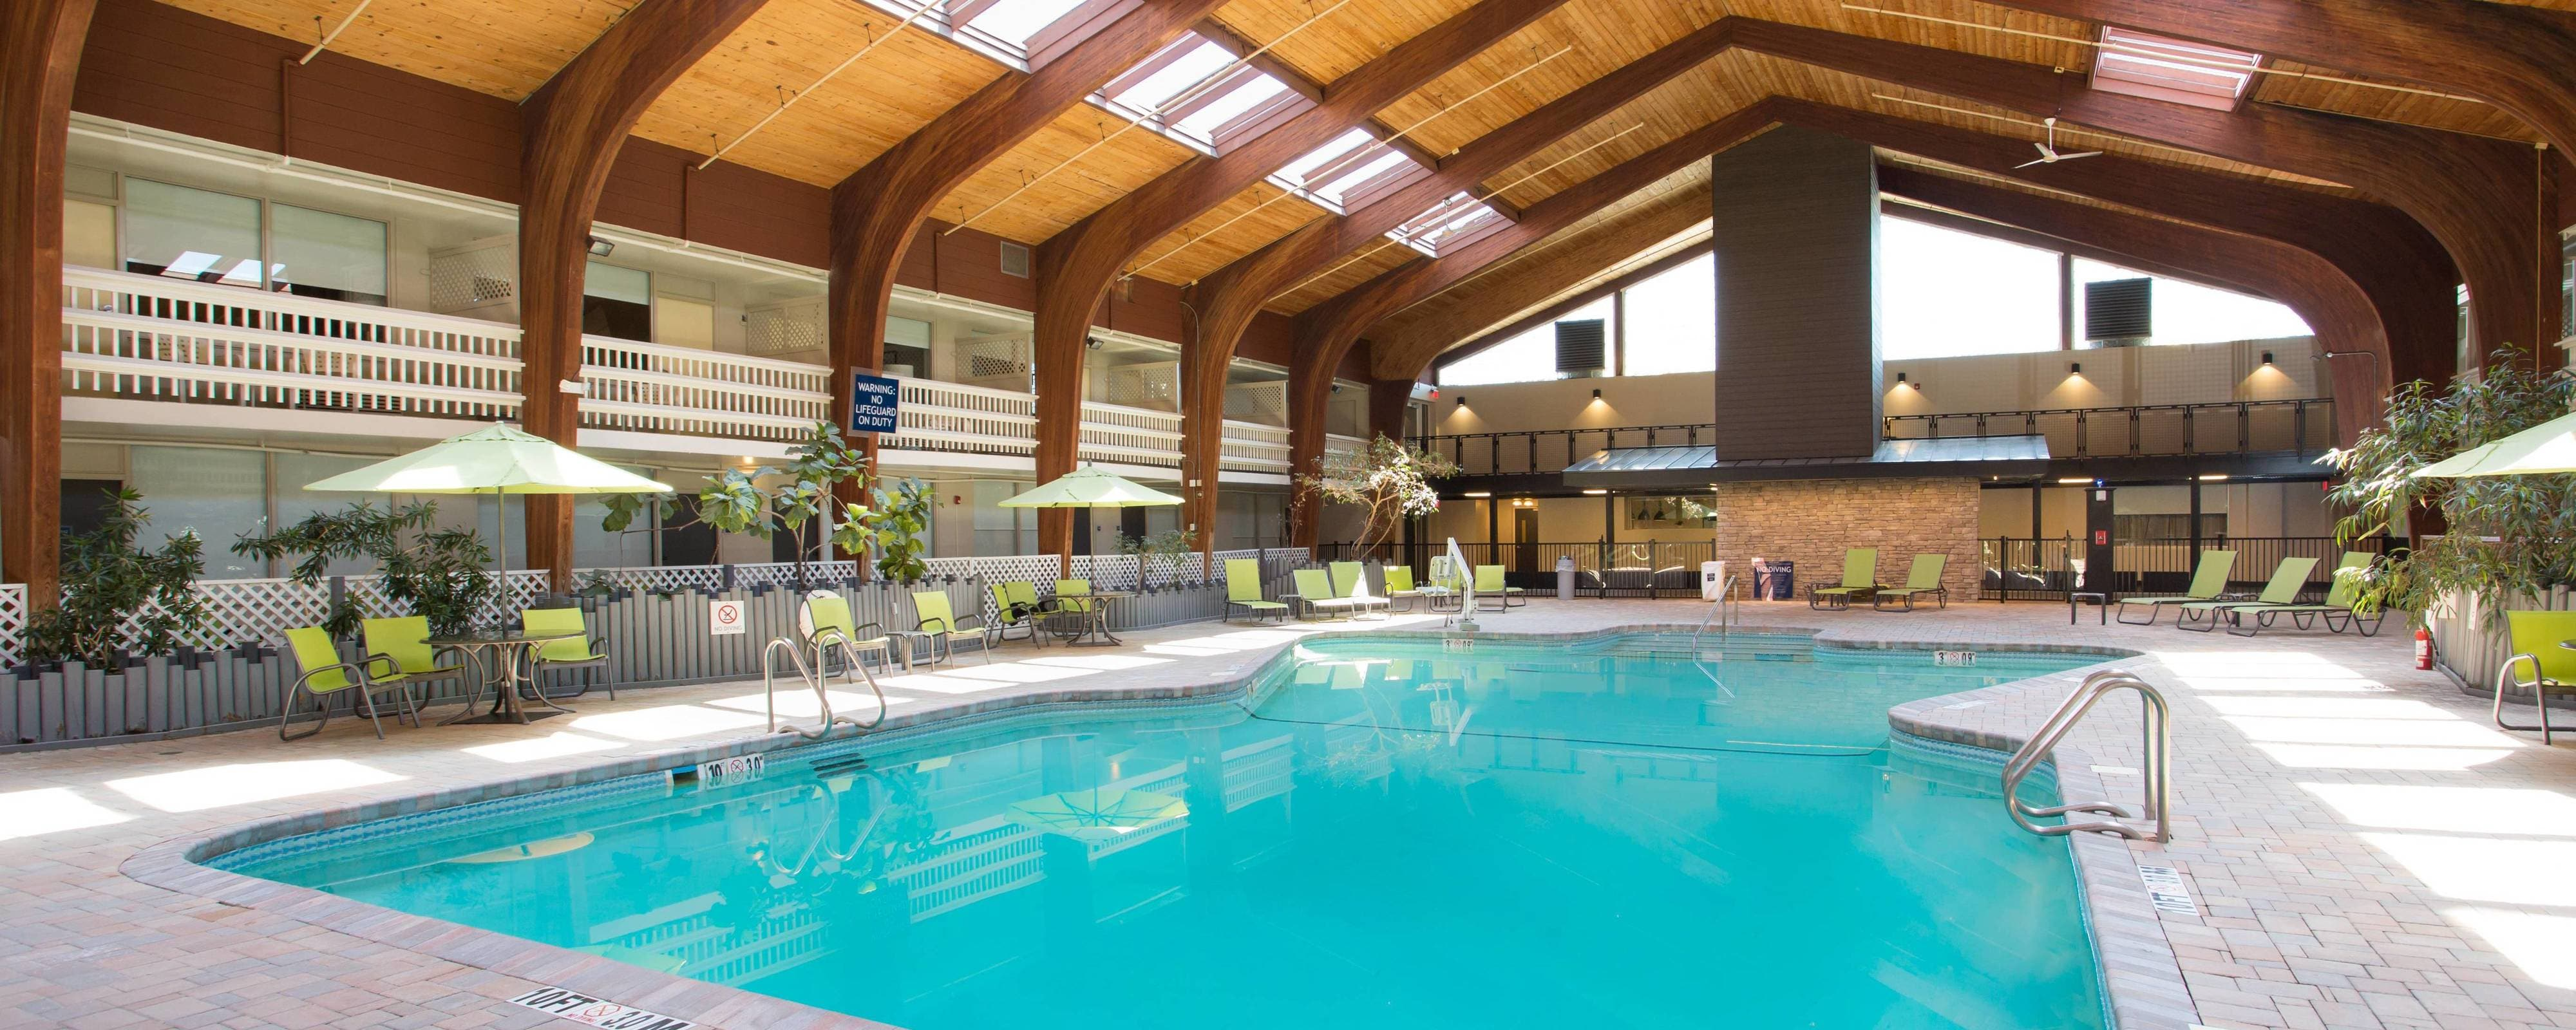 Hotel Gym & Recreation | Four Points by Sheraton Eastham